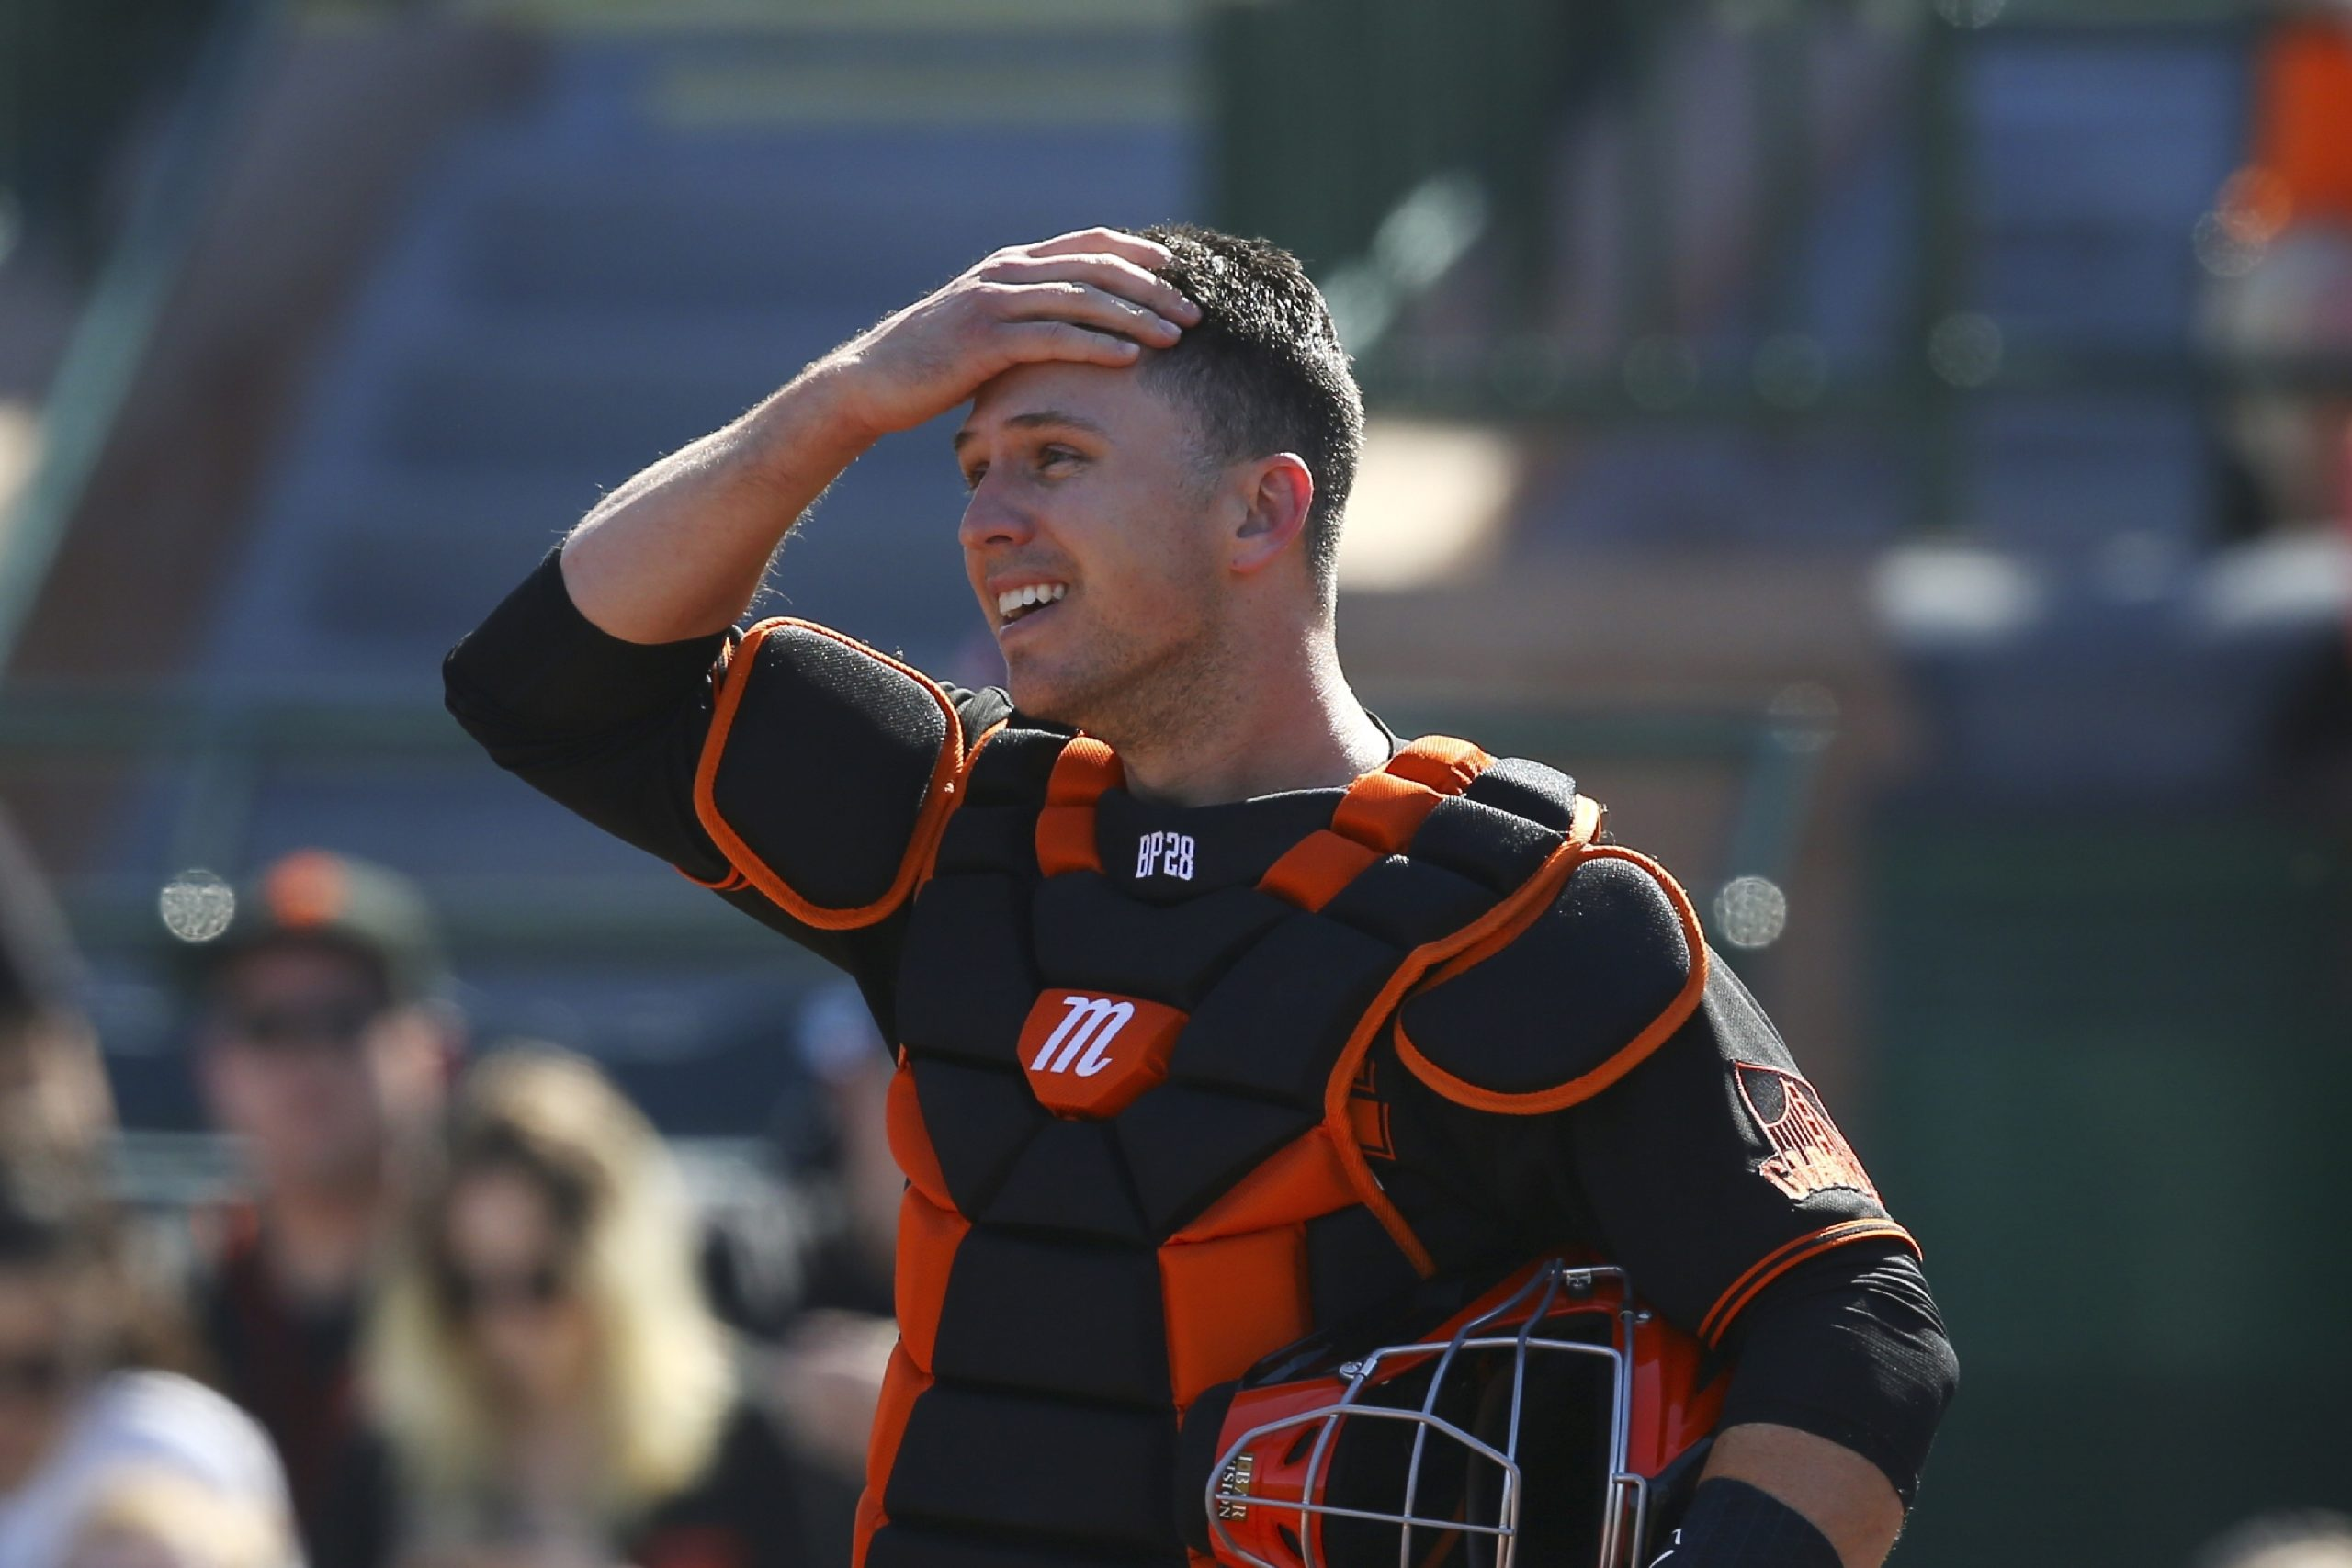 San Francisco Giants star Buster Posey opts out of 2020 season